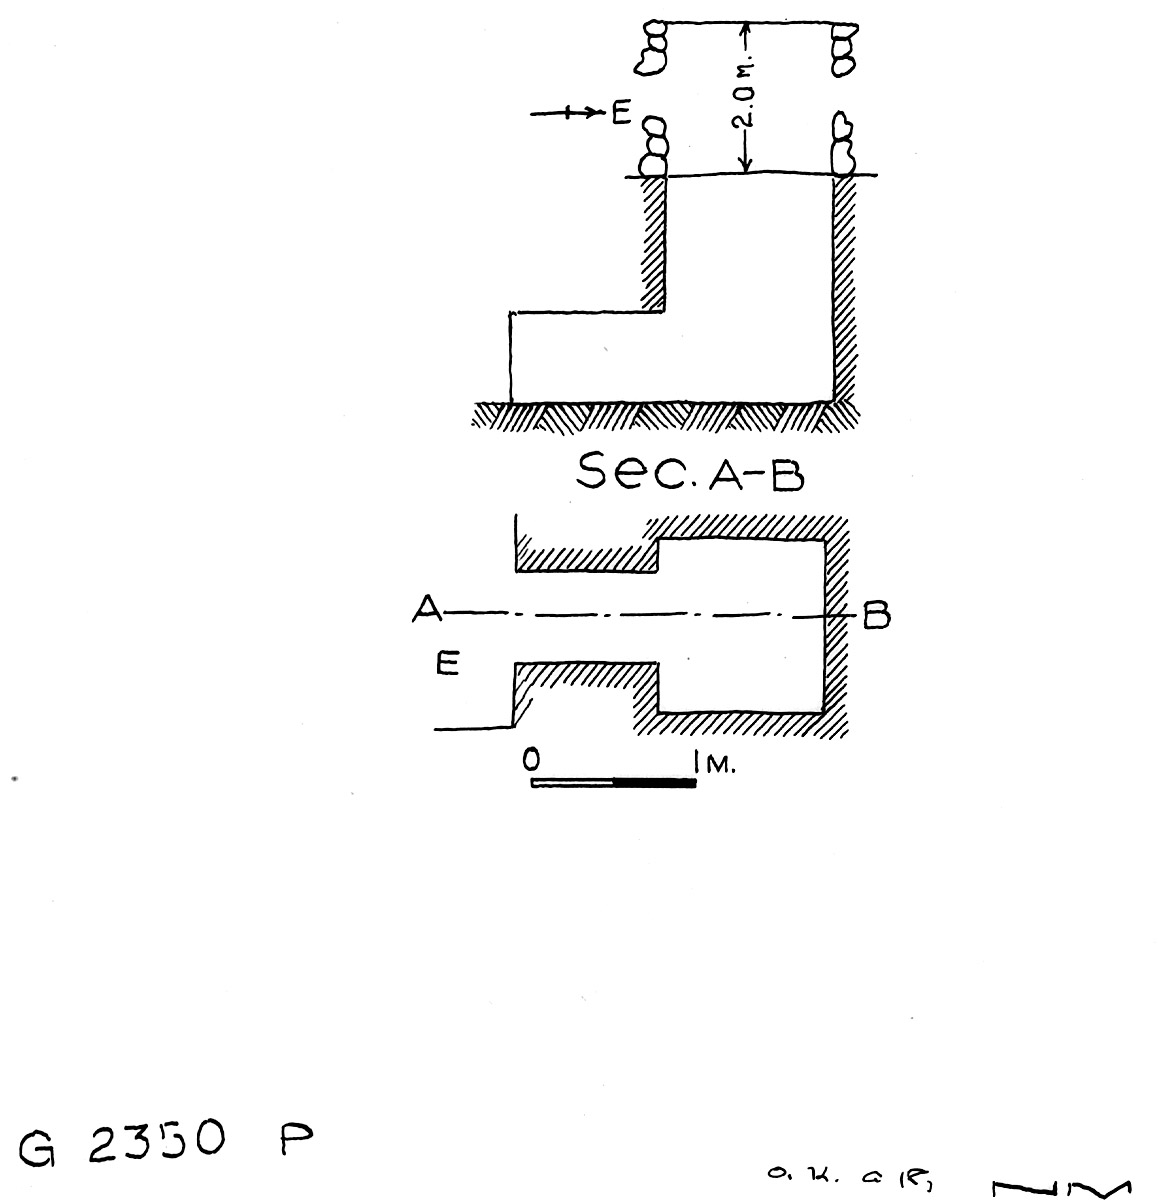 Maps and plans: G 2350 = G 5290, Shaft P